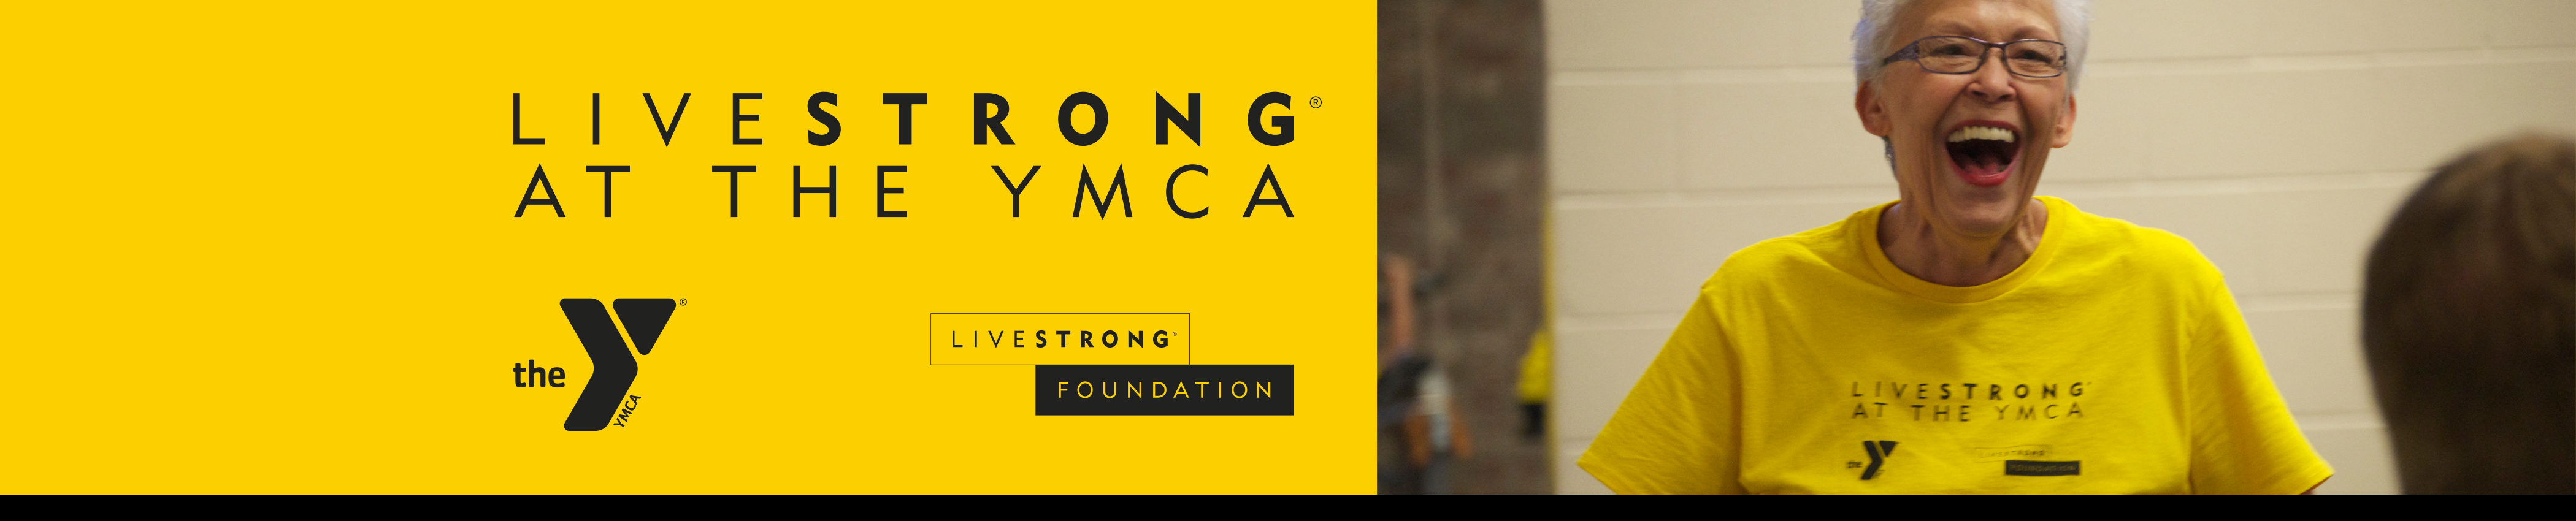 YMCA LIVESTRONG